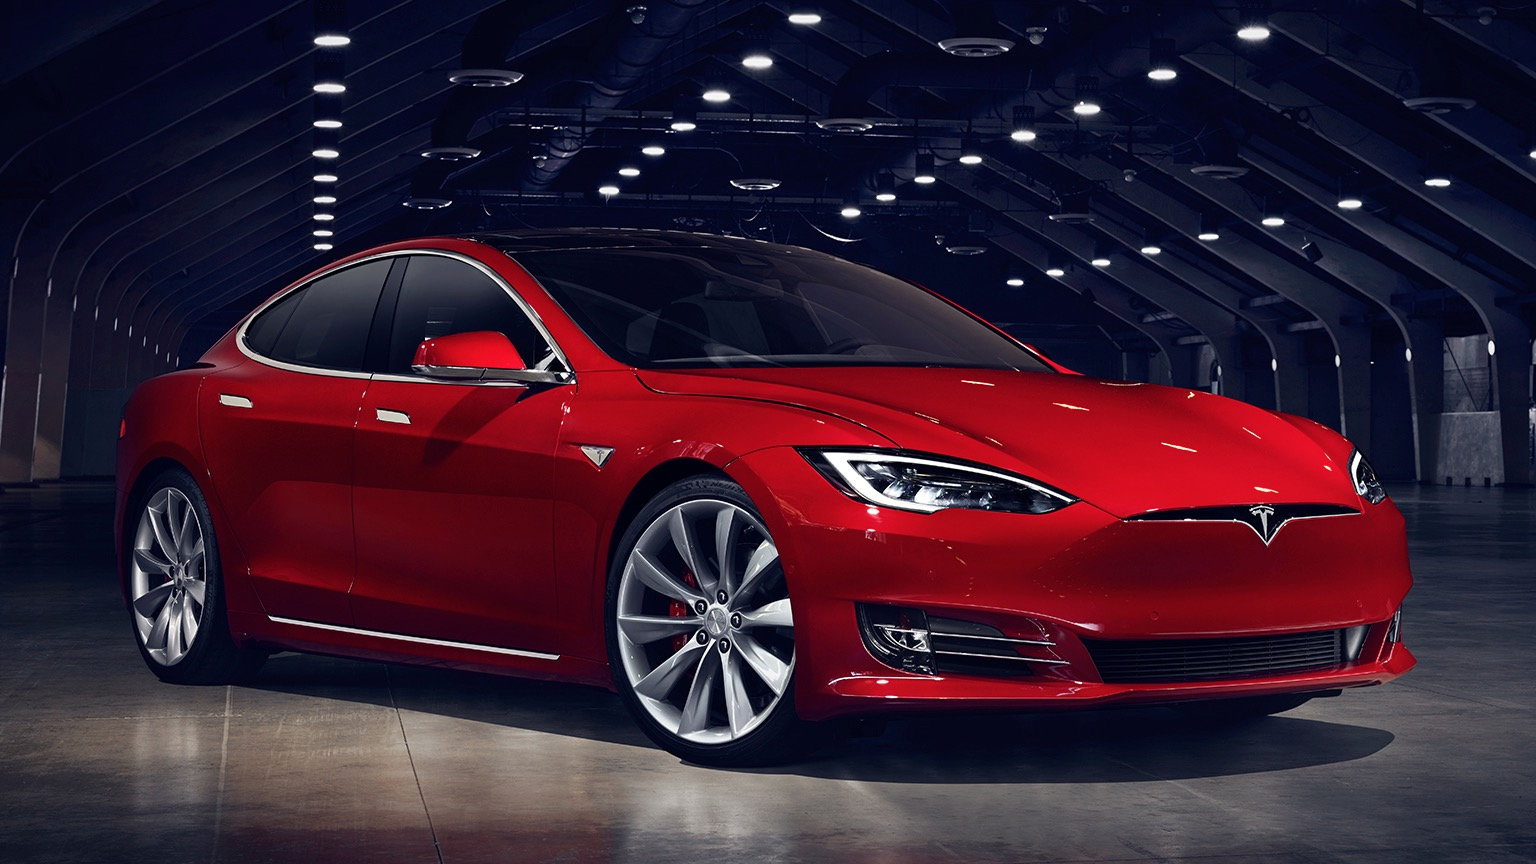 Tesla Model S Ludicrous Performance